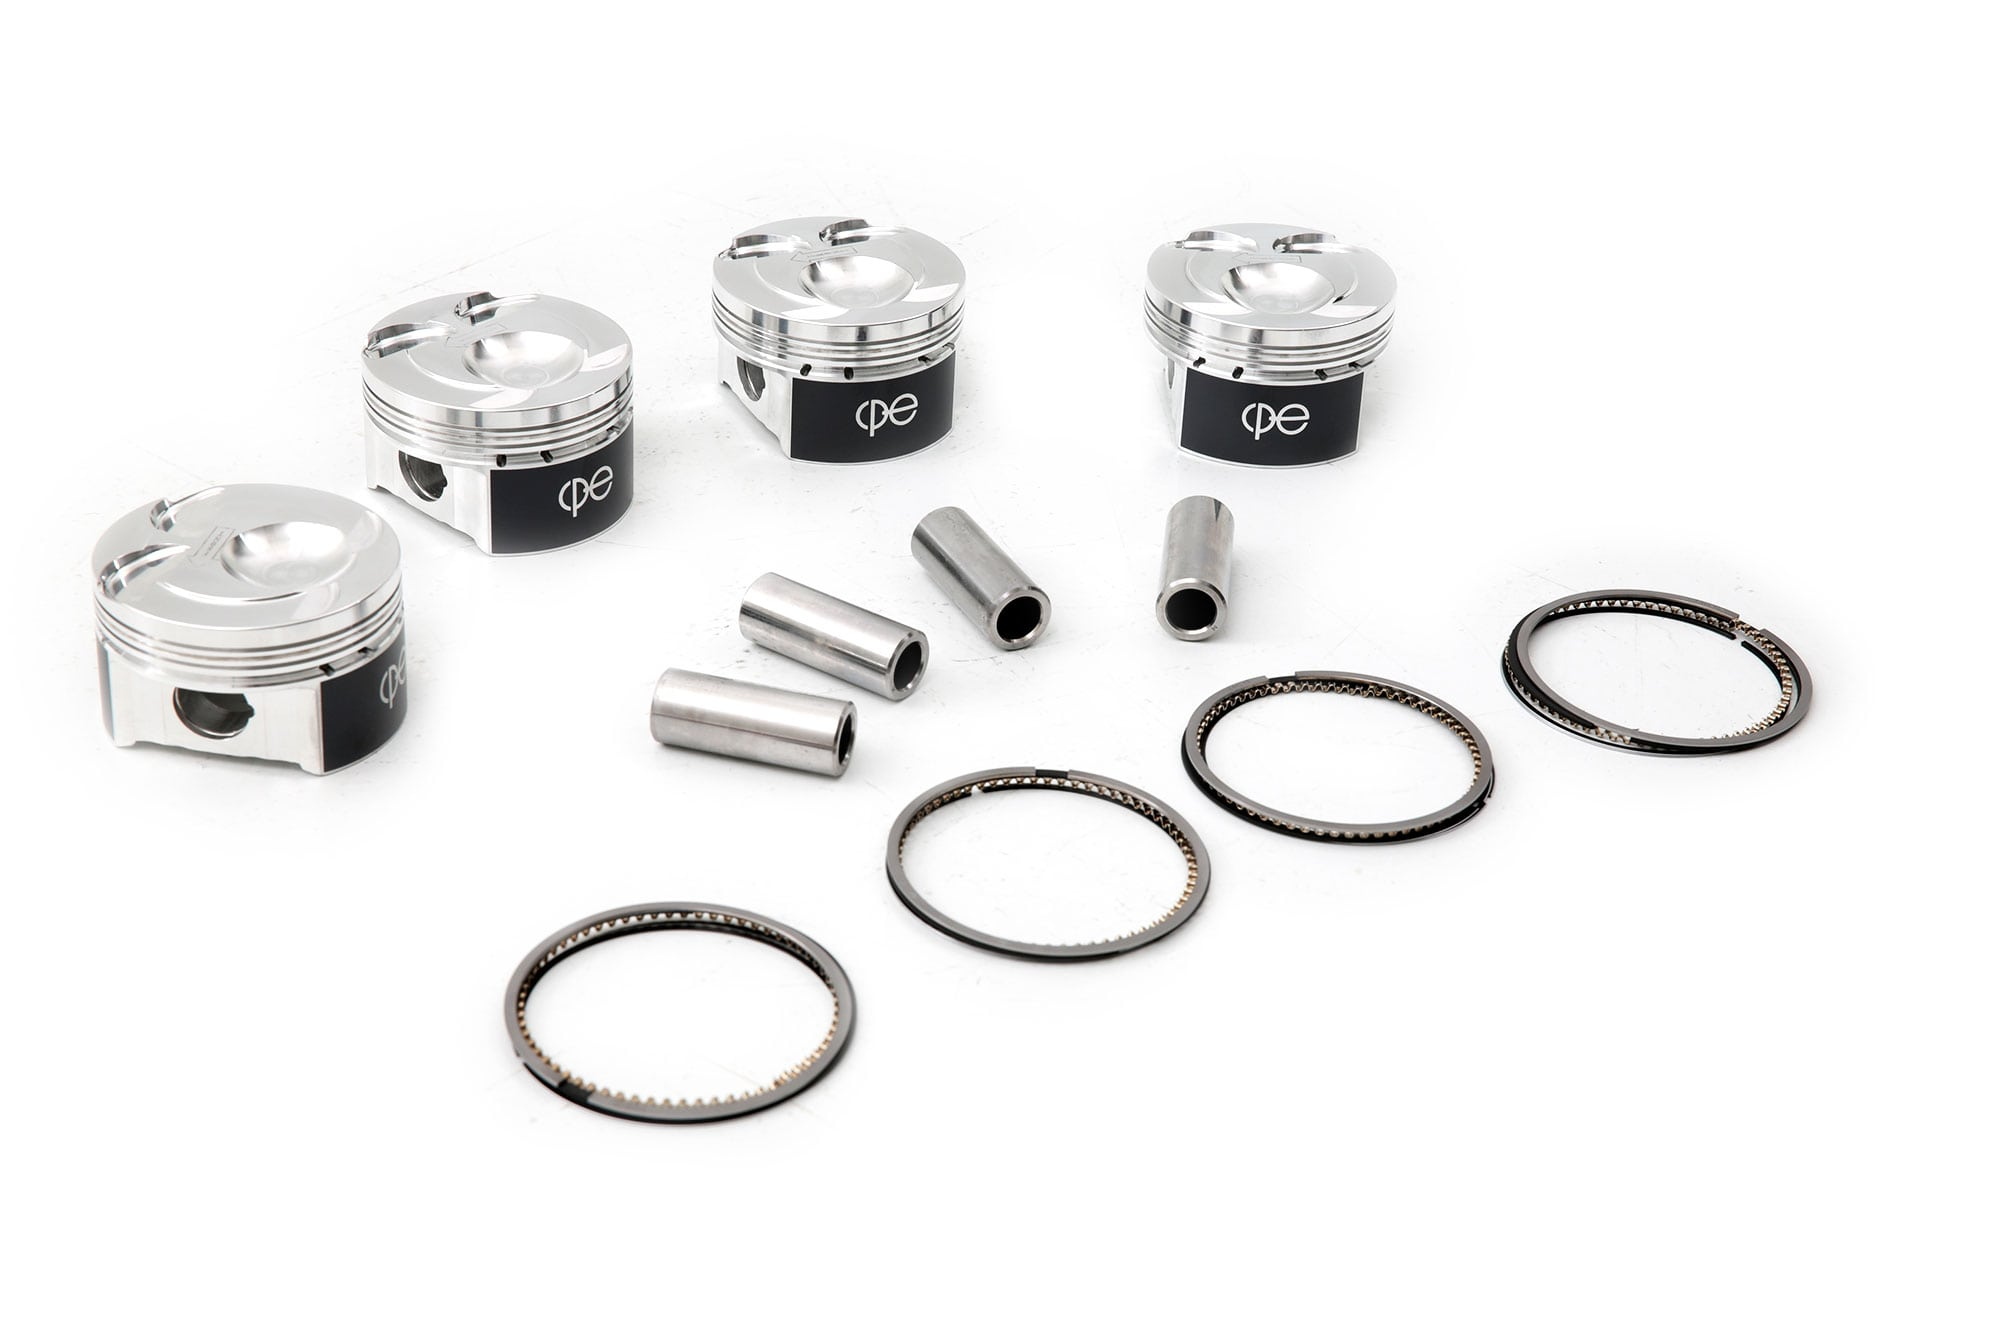 Cp E Magnumdi Ford Turbo Stage2 Ecoboost 2 3 Pistons